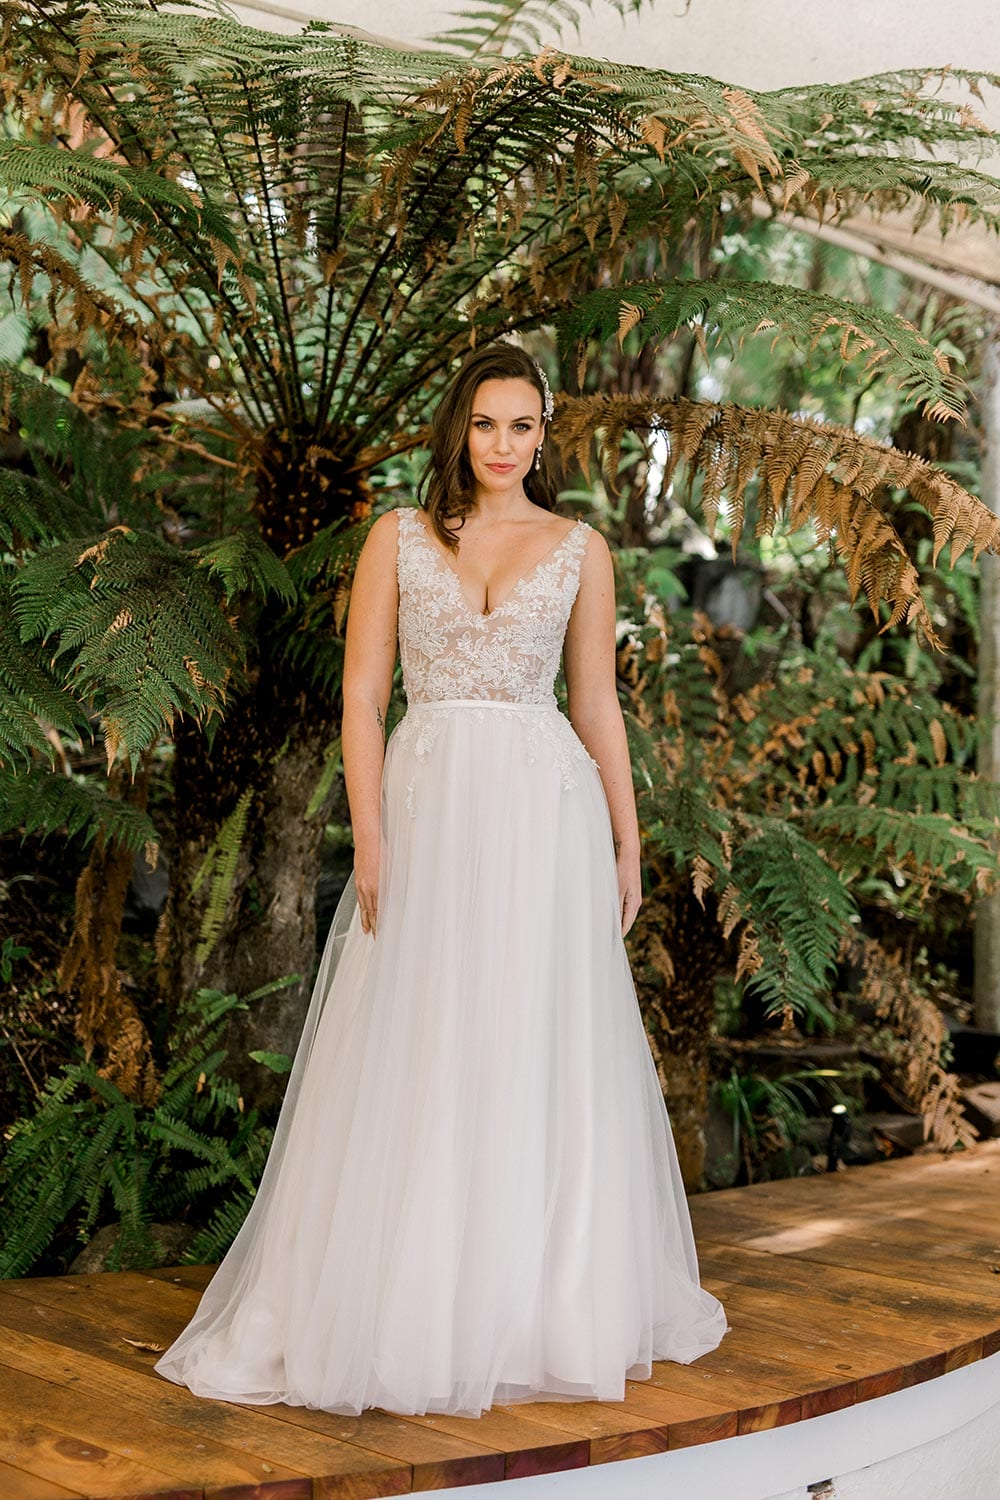 Vivian Wedding gown from Vinka Design - A stunning gown with a deep V-neckline on both the front & back. Fitted semi-sheer nude bodice embellished with a beaded floral lace, a soft layered tulle skirt. Worn in conservatory with fern background, portrait.